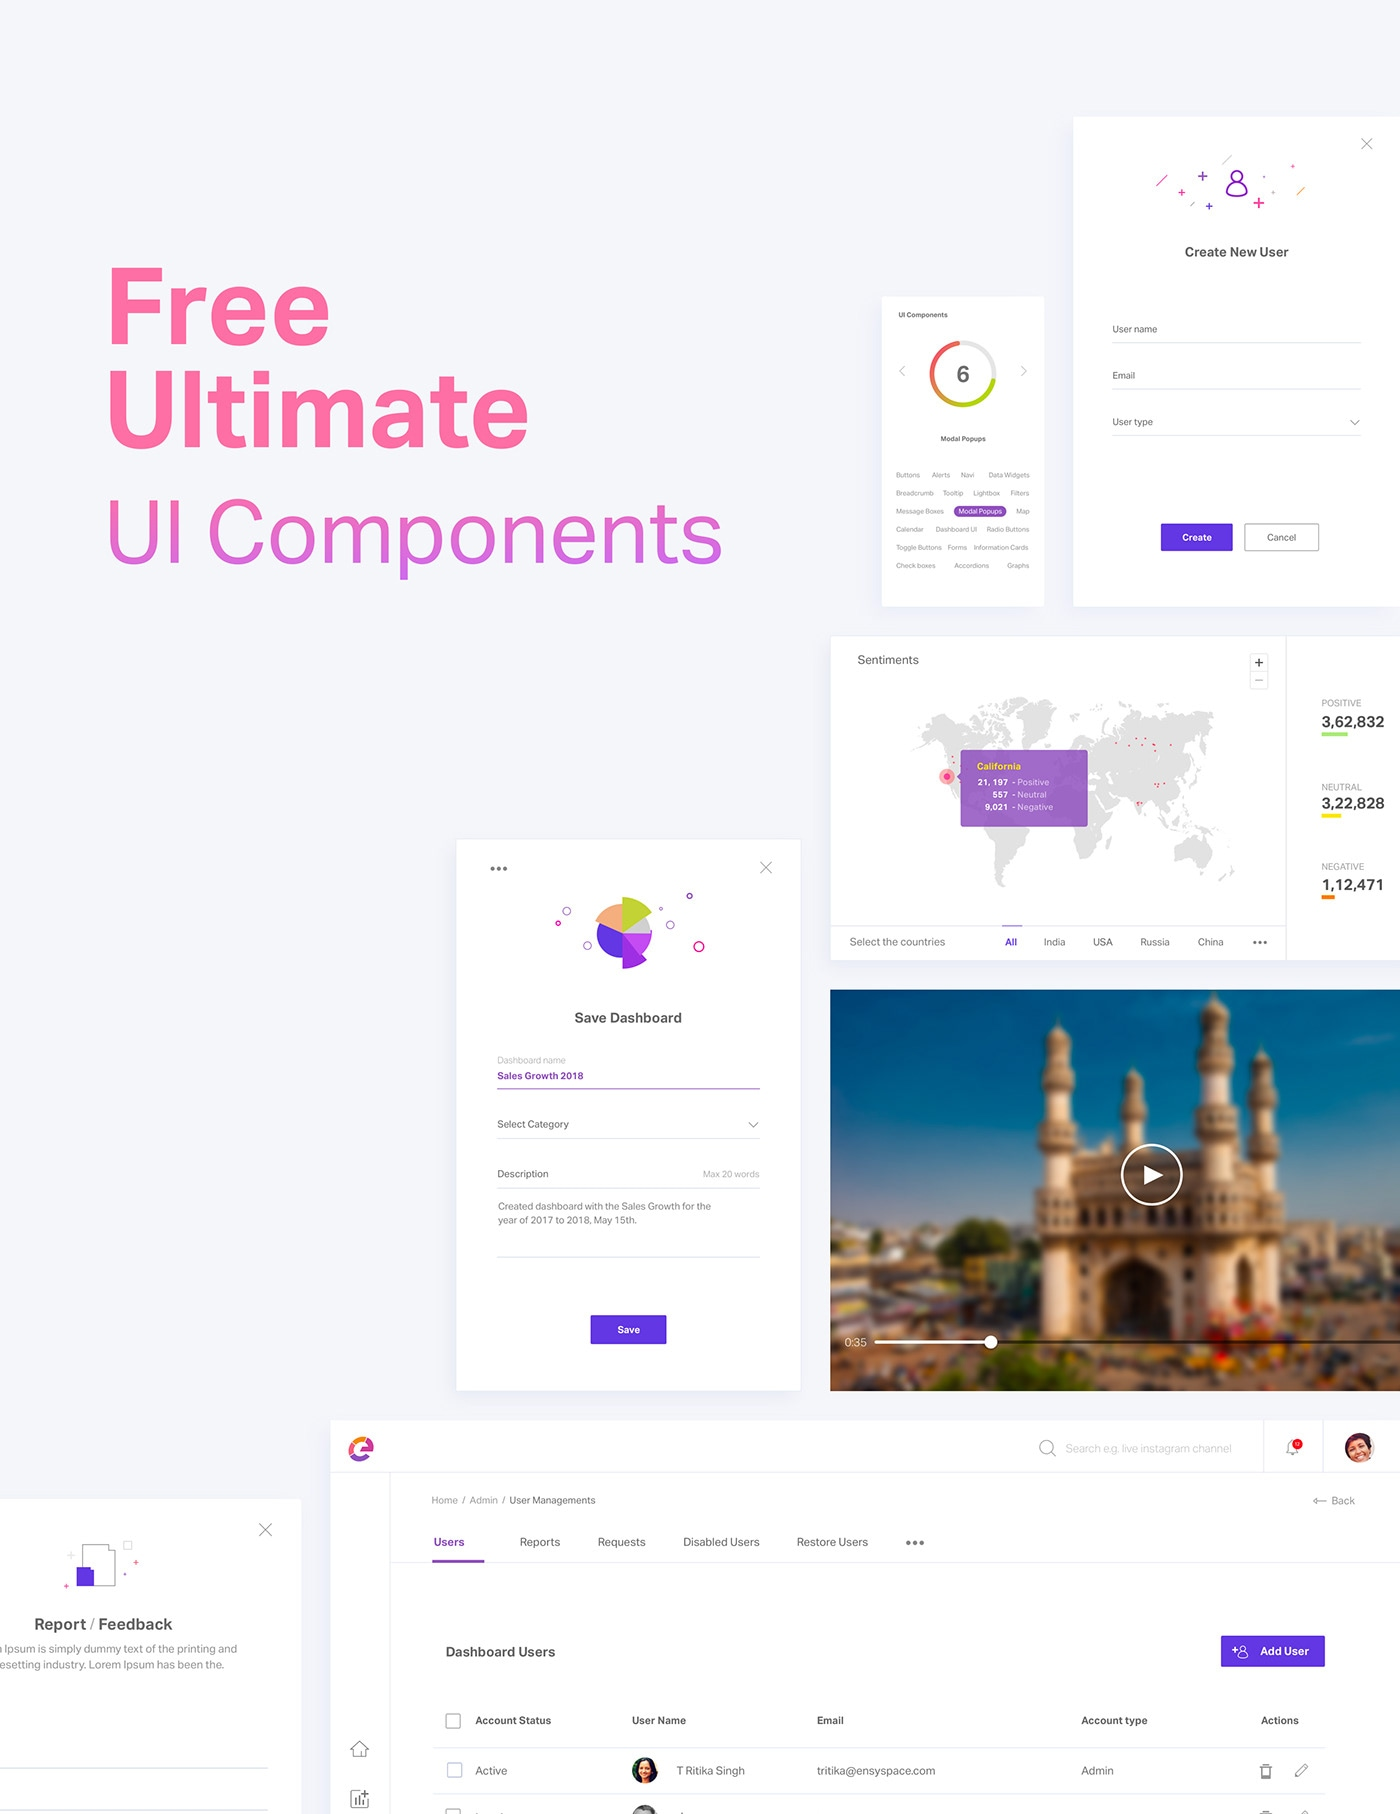 Free Ultimate UI Elements - Minimal and clean UI design